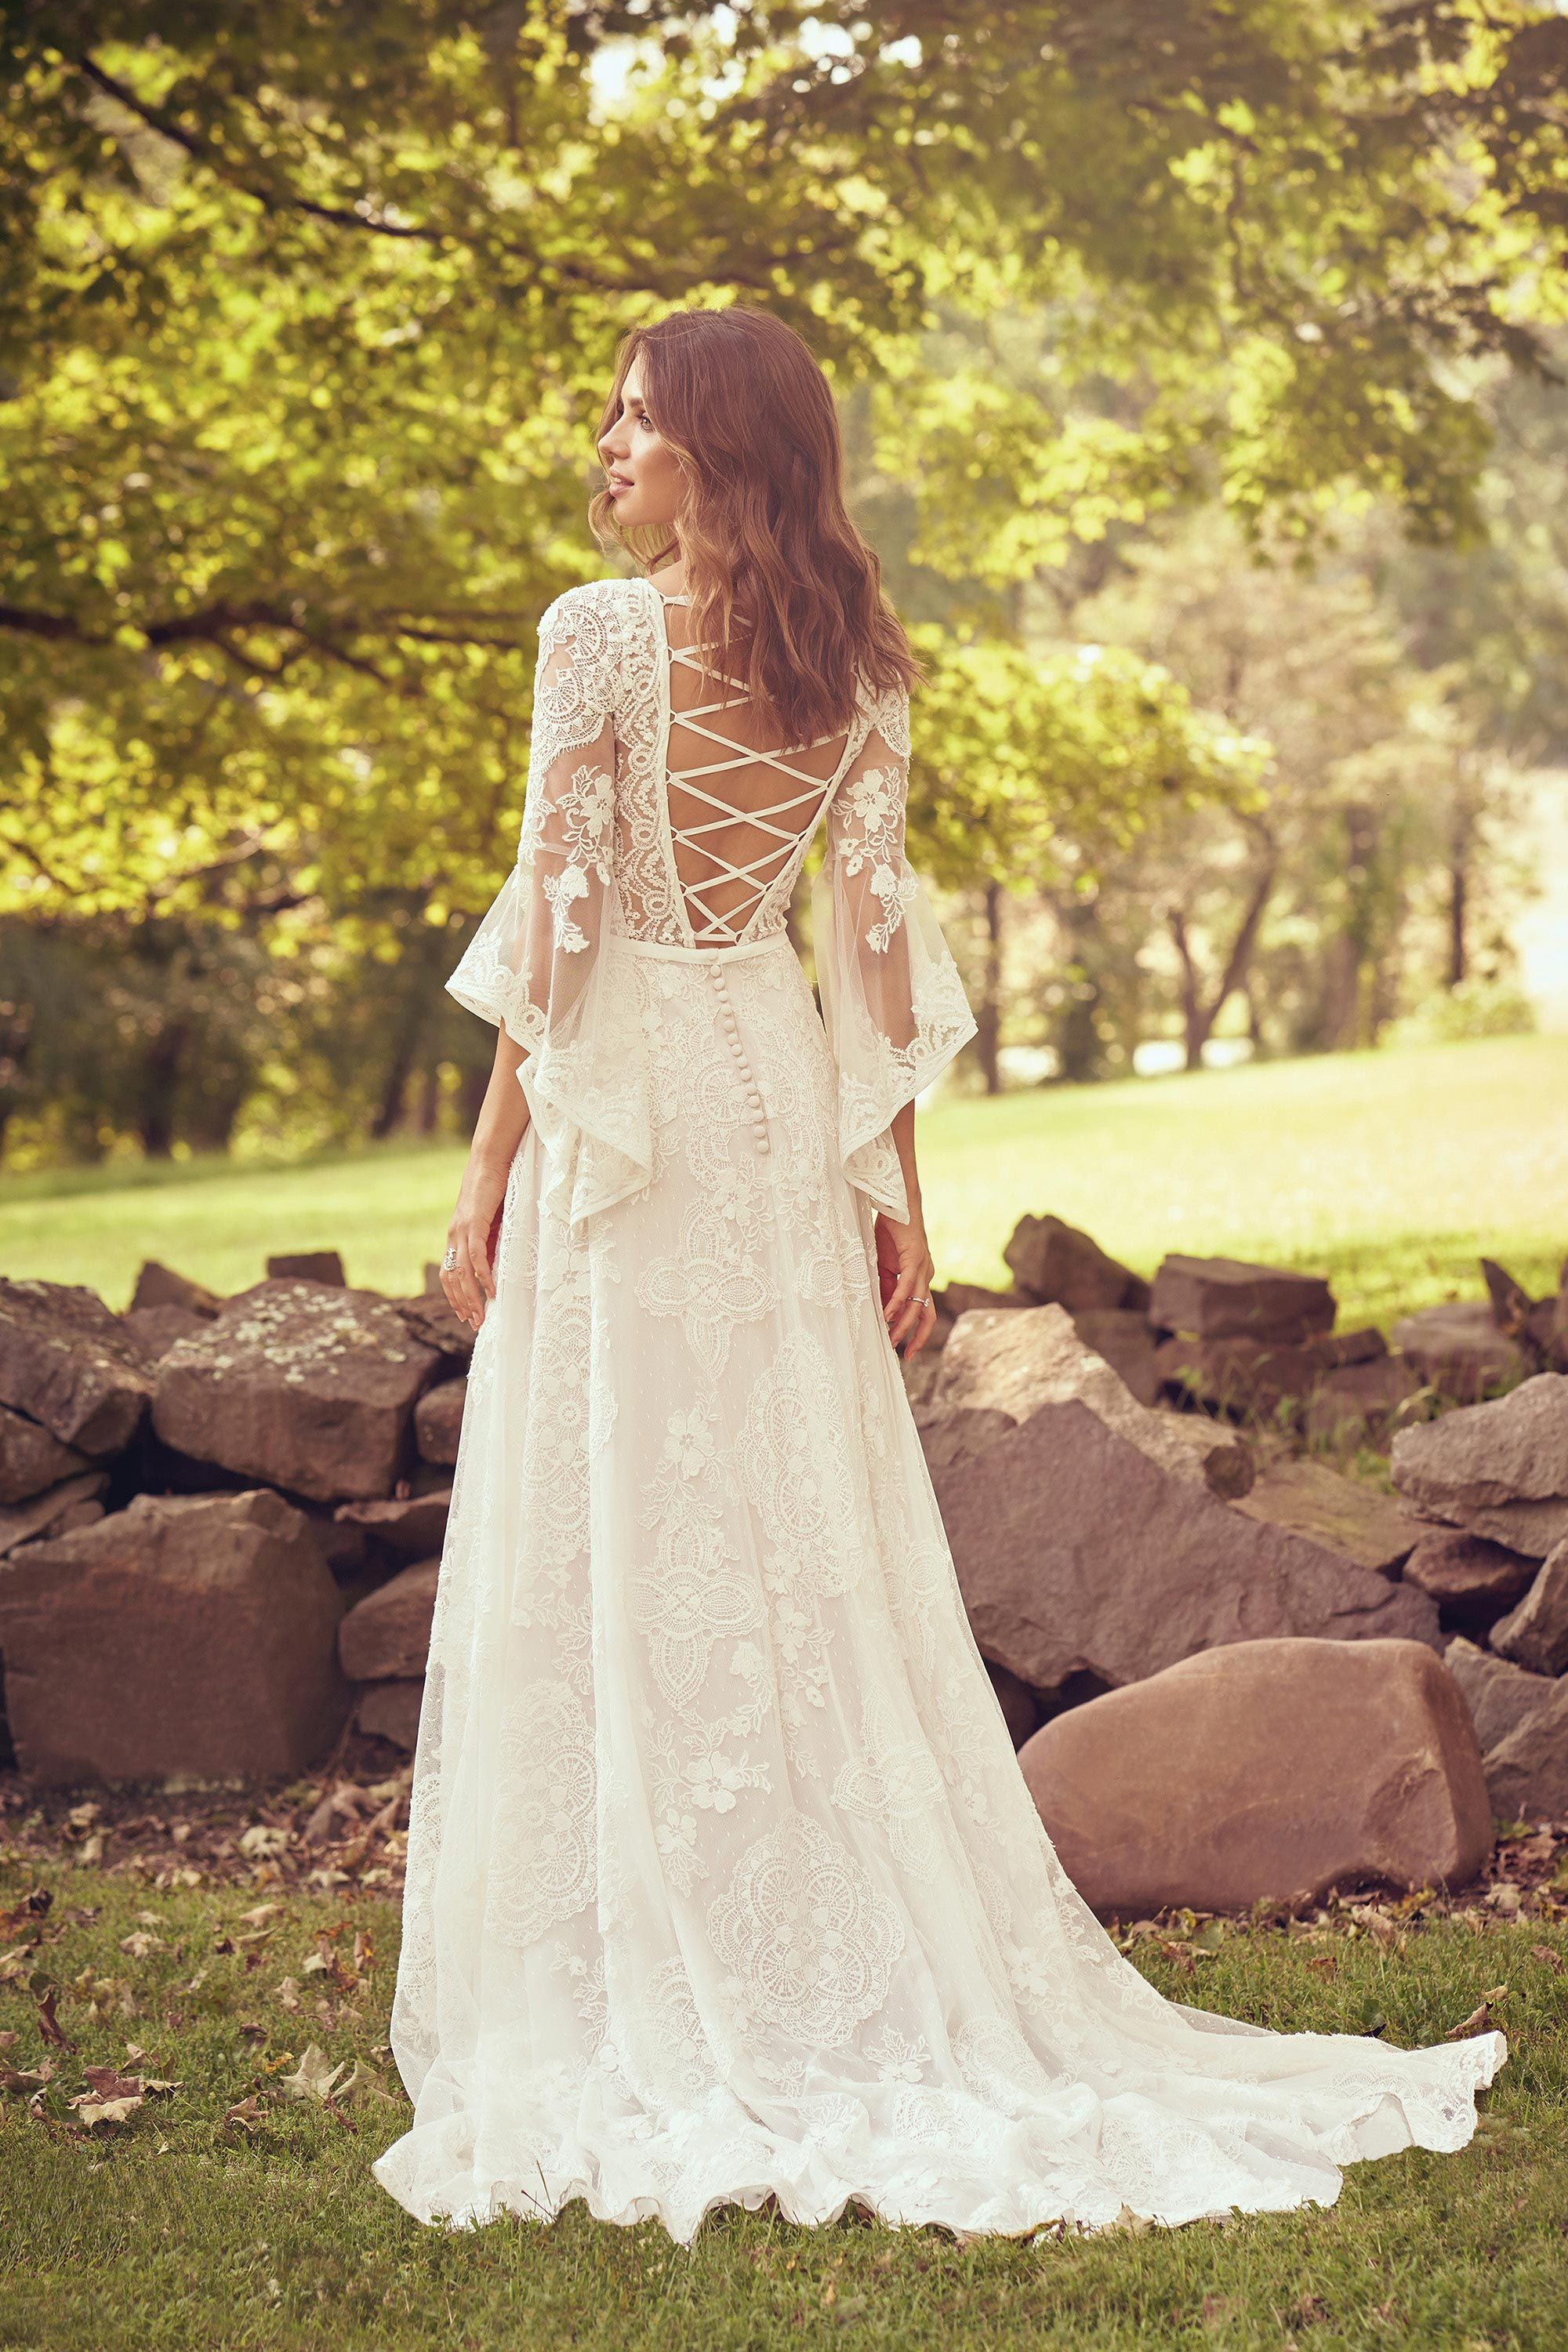 Style 66064 Bell Sleeve Lace Dress With Criss Cross Back Detail Lillian We Lace Dress With Sleeves Bell Sleeve Wedding Dress Lace Wedding Dress With Sleeves